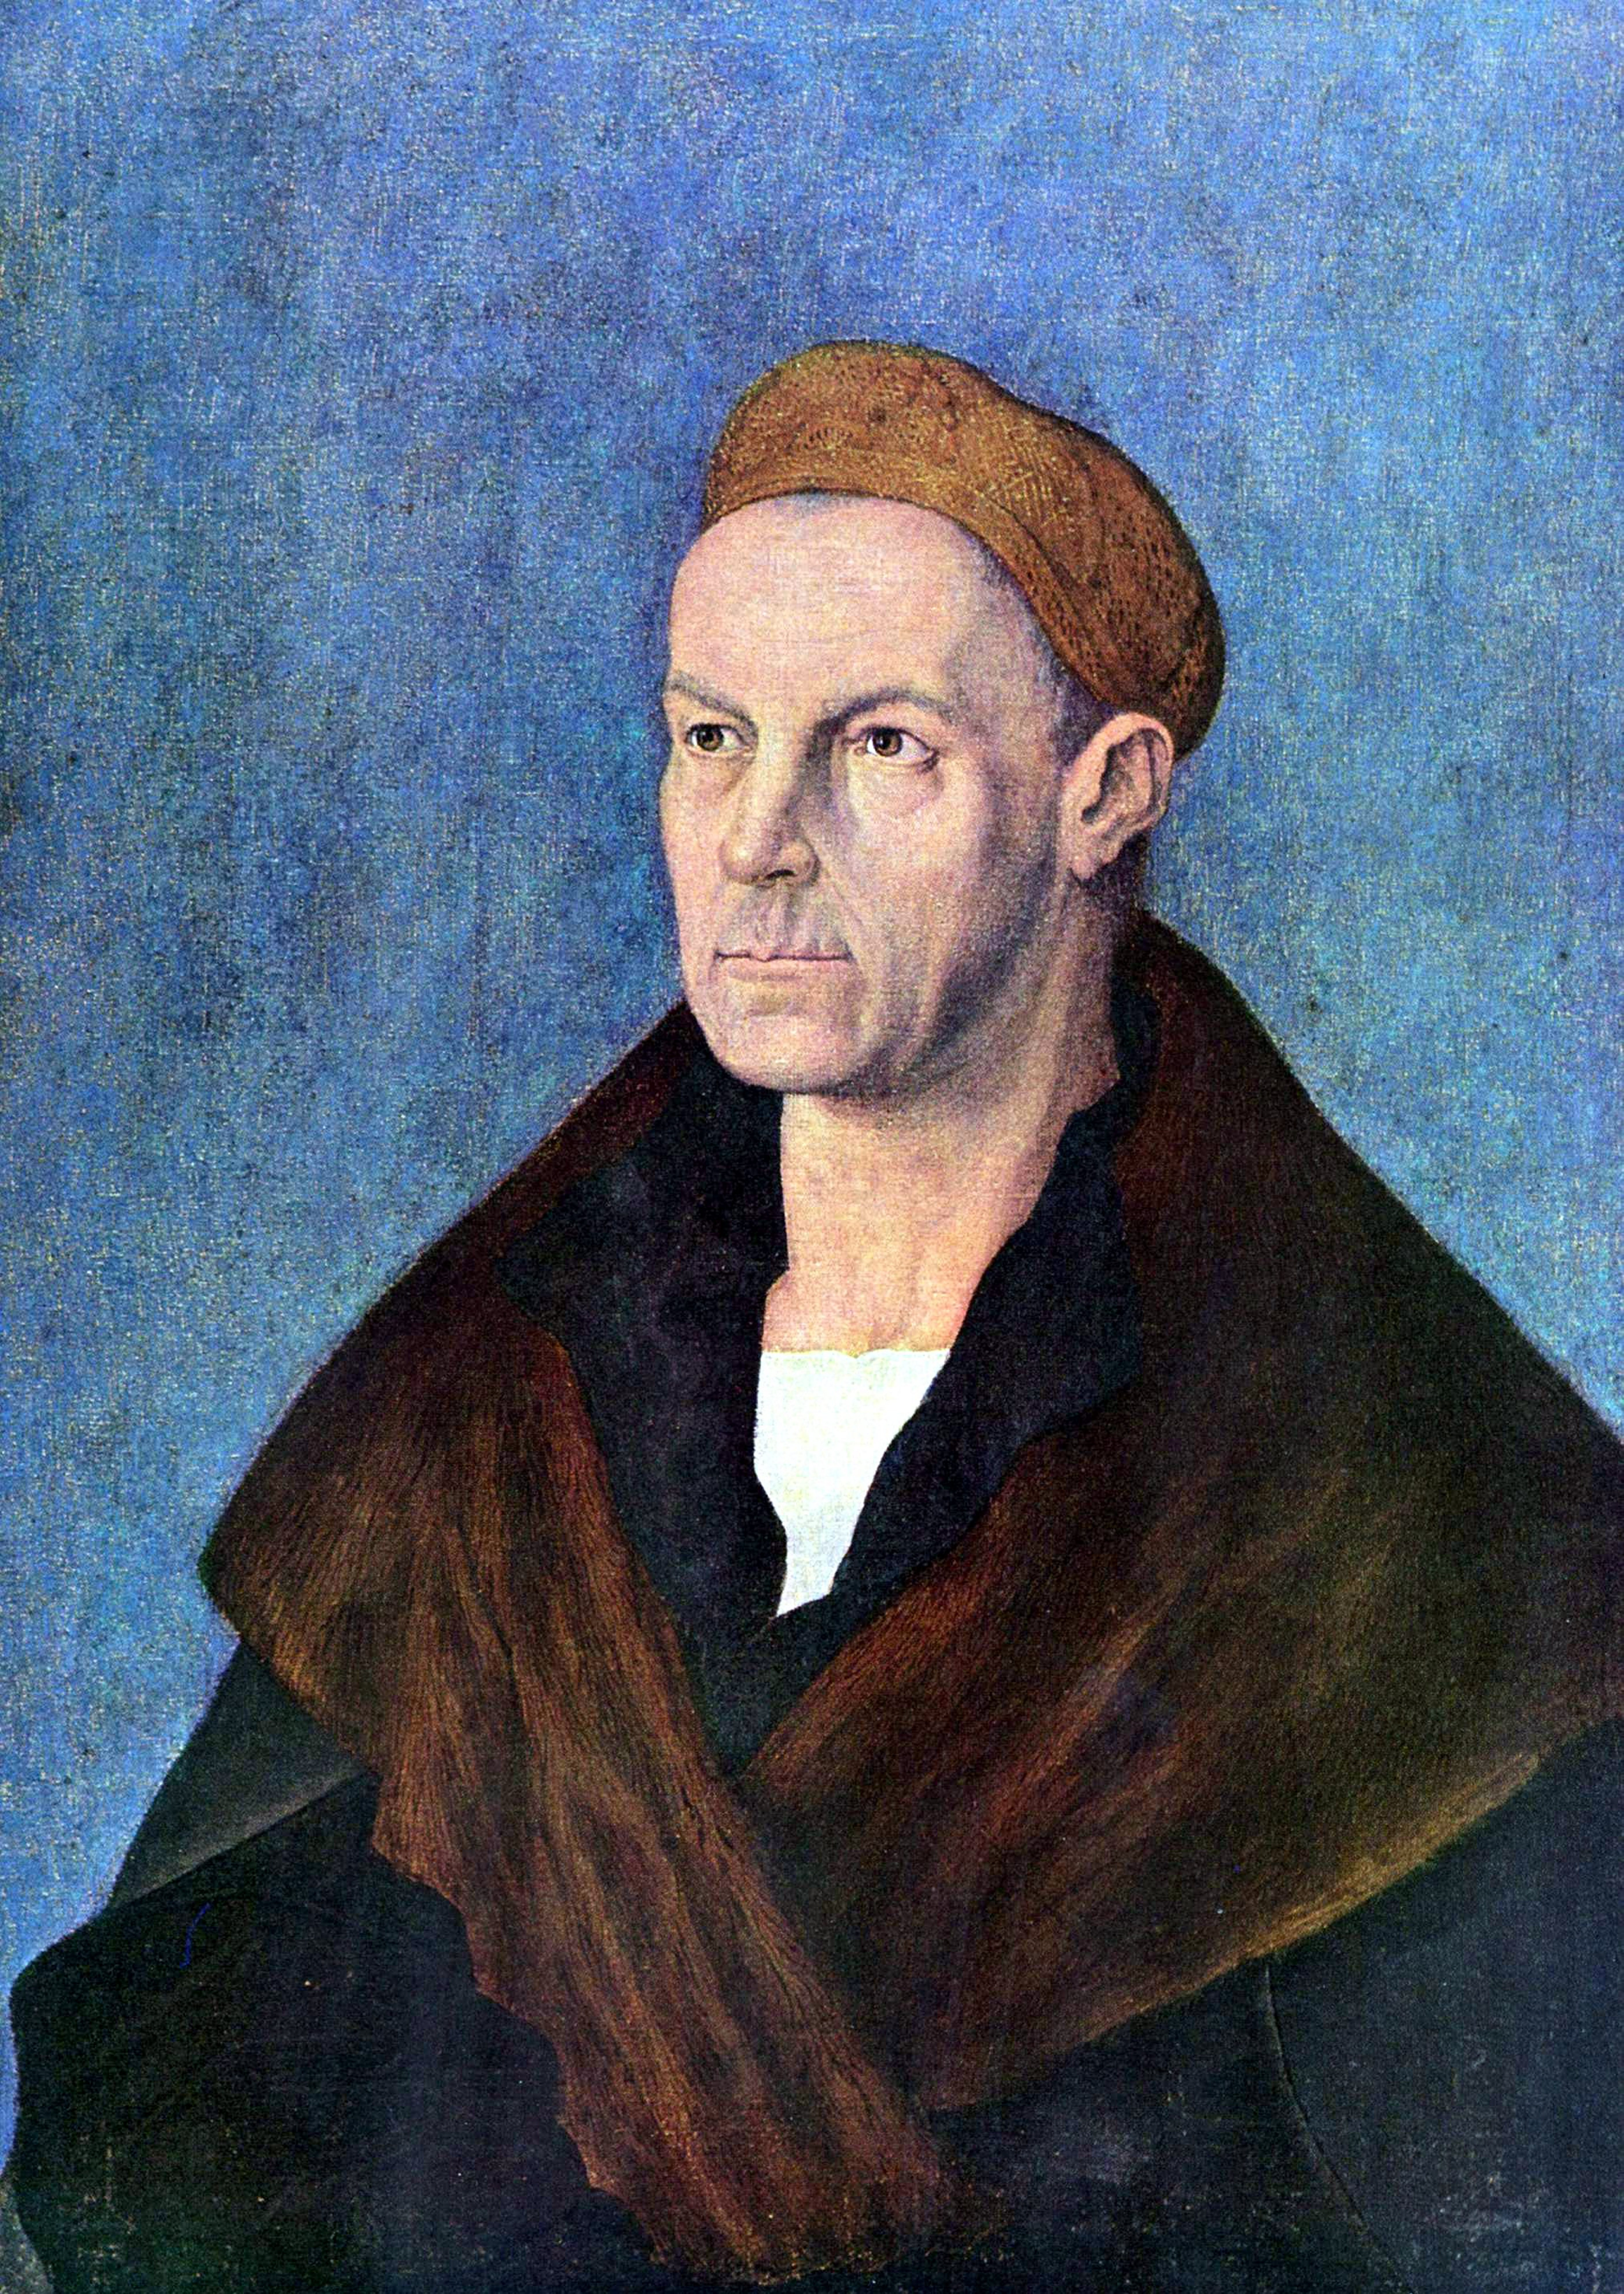 Albrecht Durer painted this portrait of Jacob Fugger, whose fortune equaled an estimated 2 percent of the GPS of all of Europe in the year 1600.